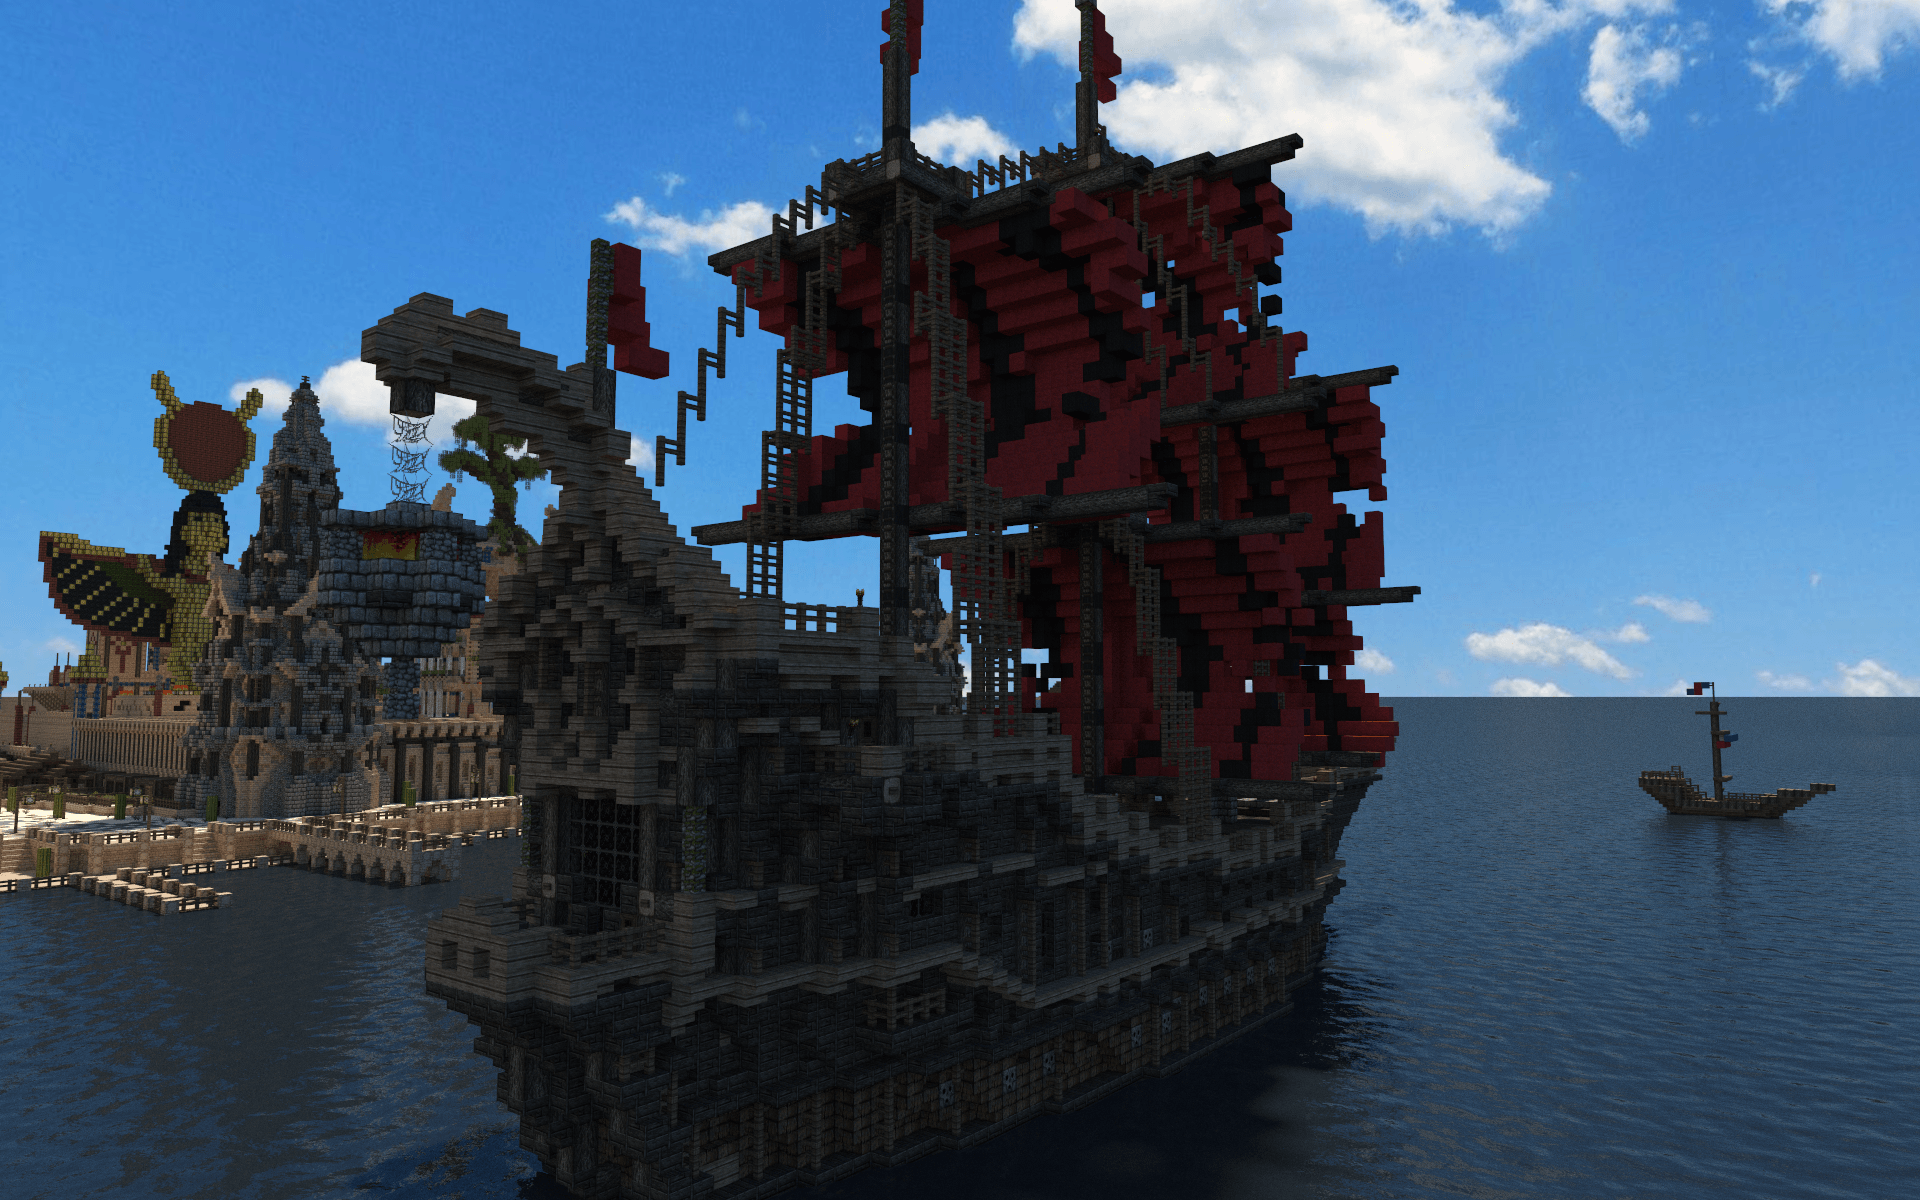 Fantasy Minecraft Ship Wallpaper Image